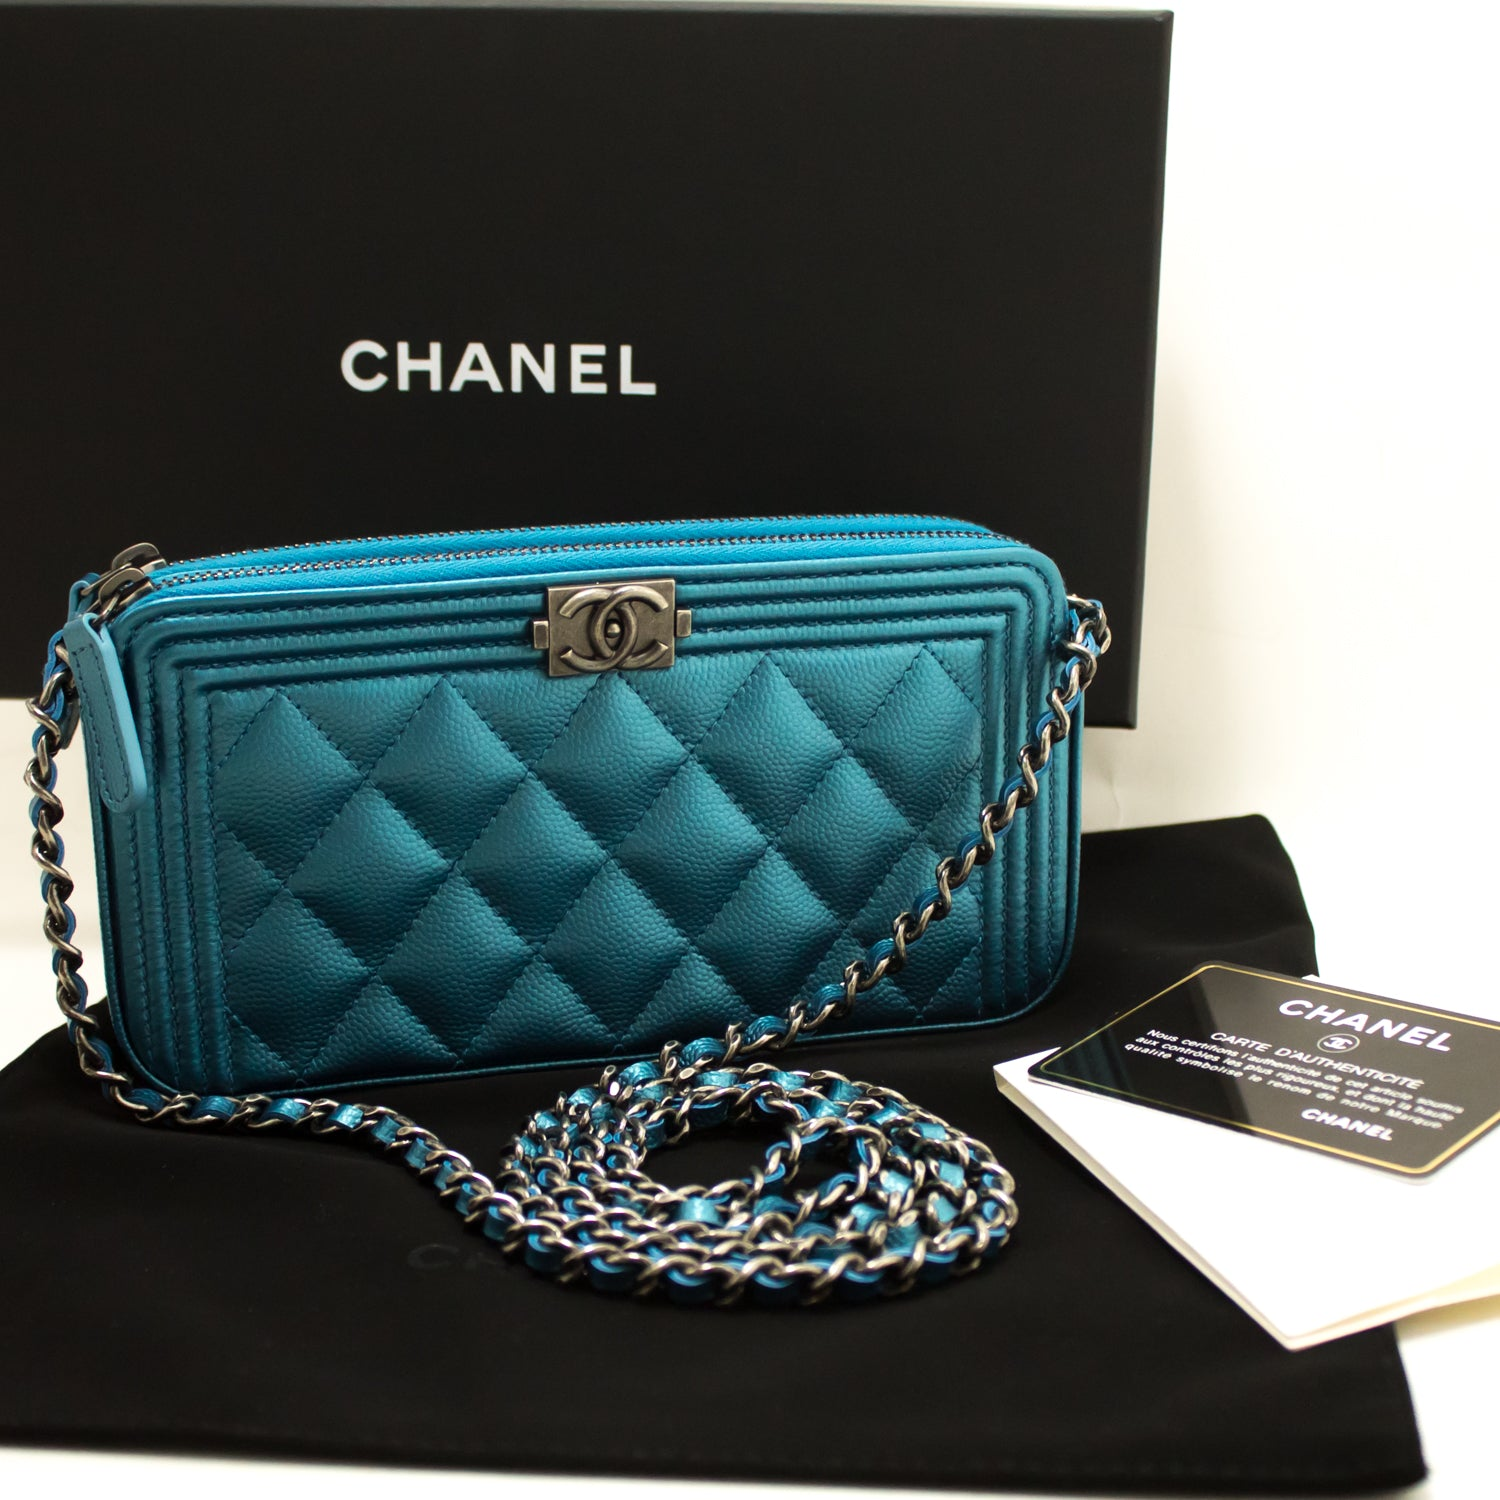 04c7be9cba24 ... CHANEL Boy Metallic Blue Caviar Wallet On Chain WOC Clutch Bag L01- Chanel-hannari ...